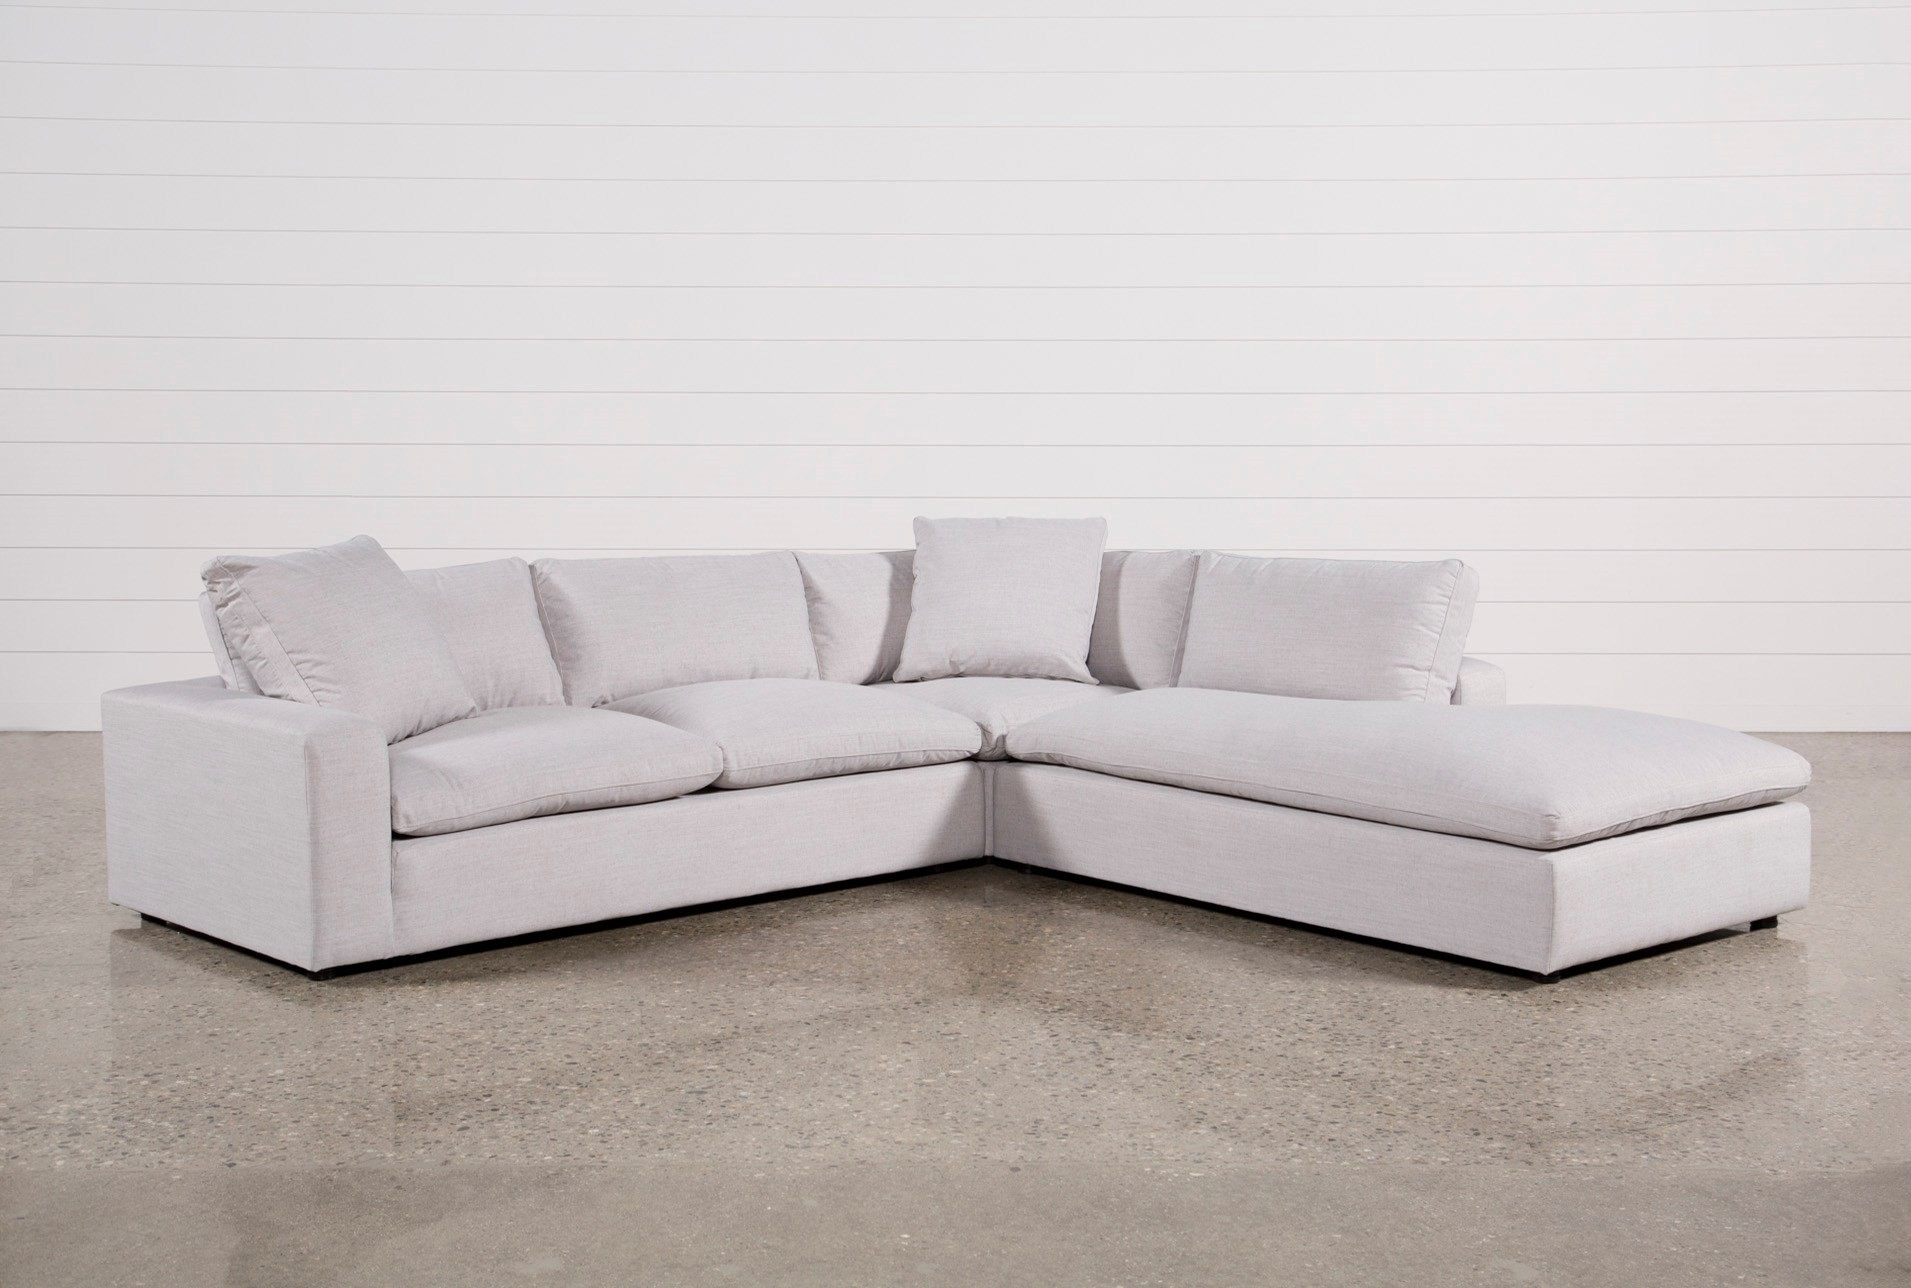 Living Spaces Sectional Sofas Delano 2 Piece W Laf Oversized Chaise For Delano 2 Piece Sectionals With Laf Oversized Chaise (Image 19 of 25)